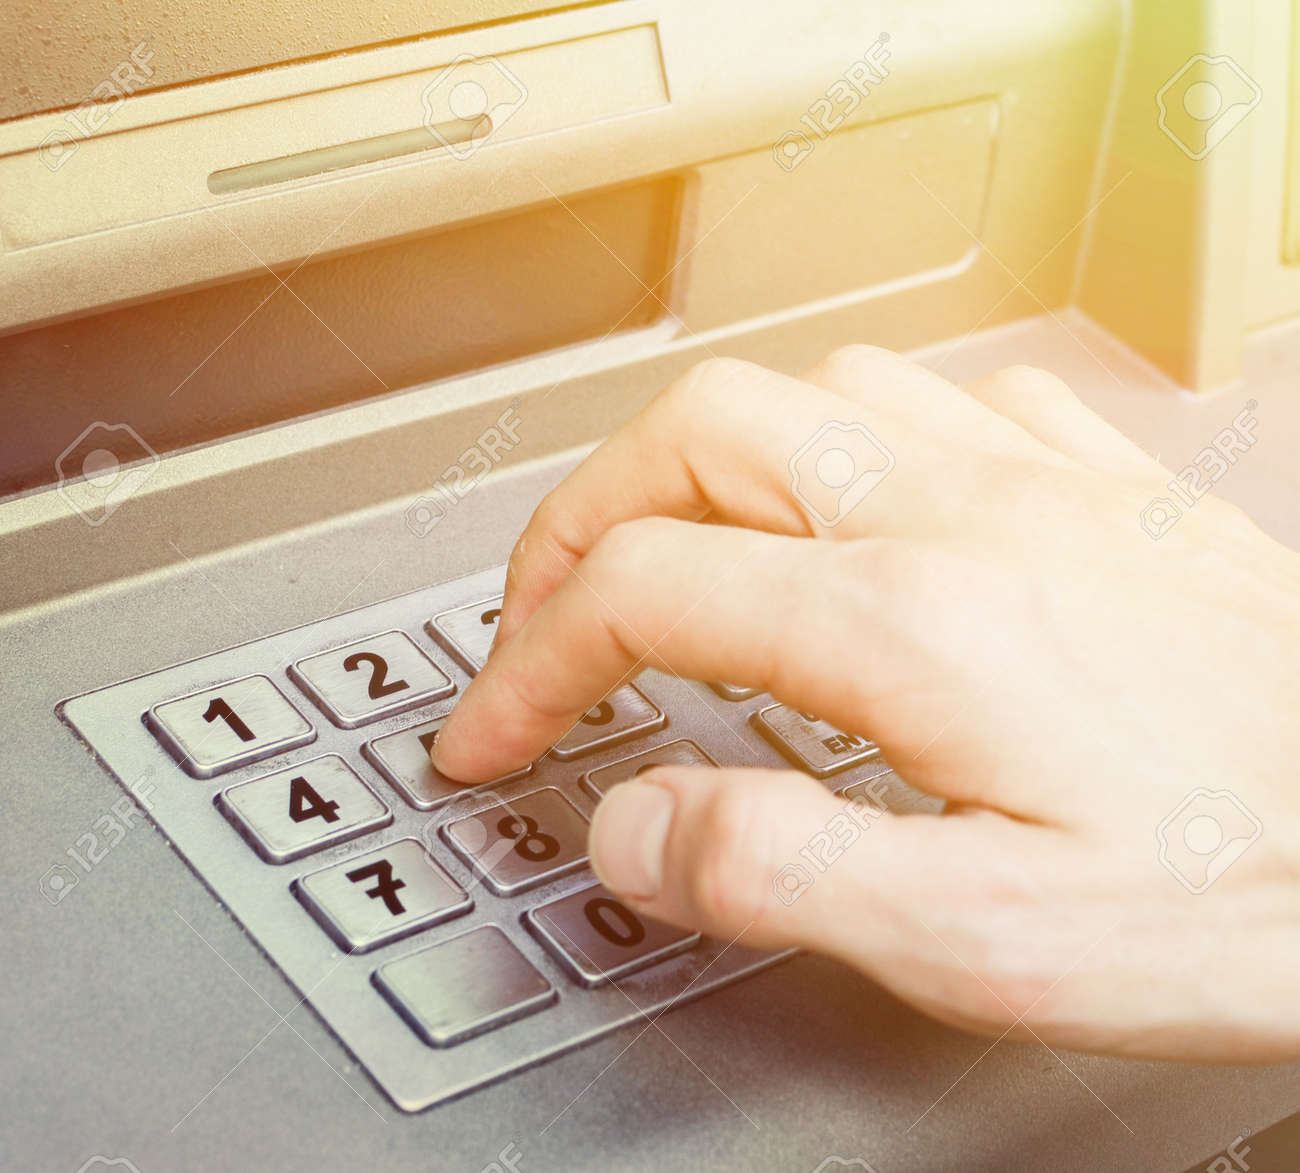 Hand entering PIN numbers on ATM bank machine - 40304854